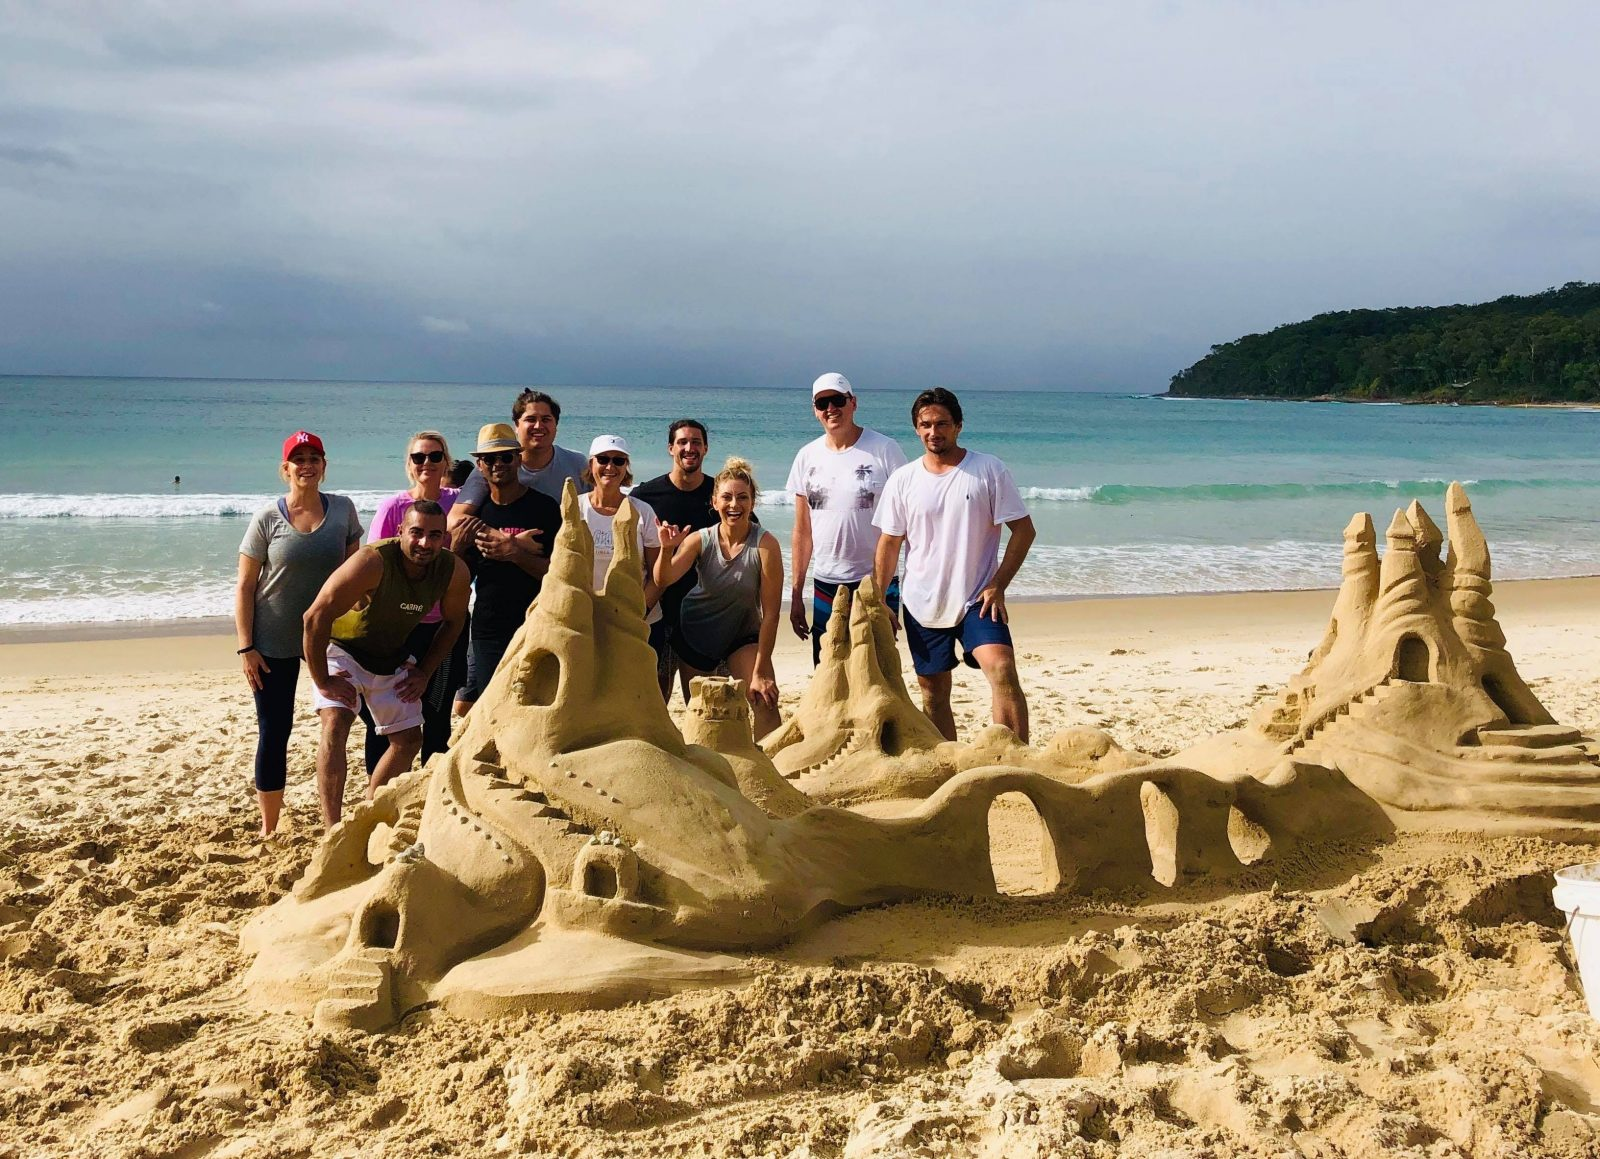 sandcastle activity noosa